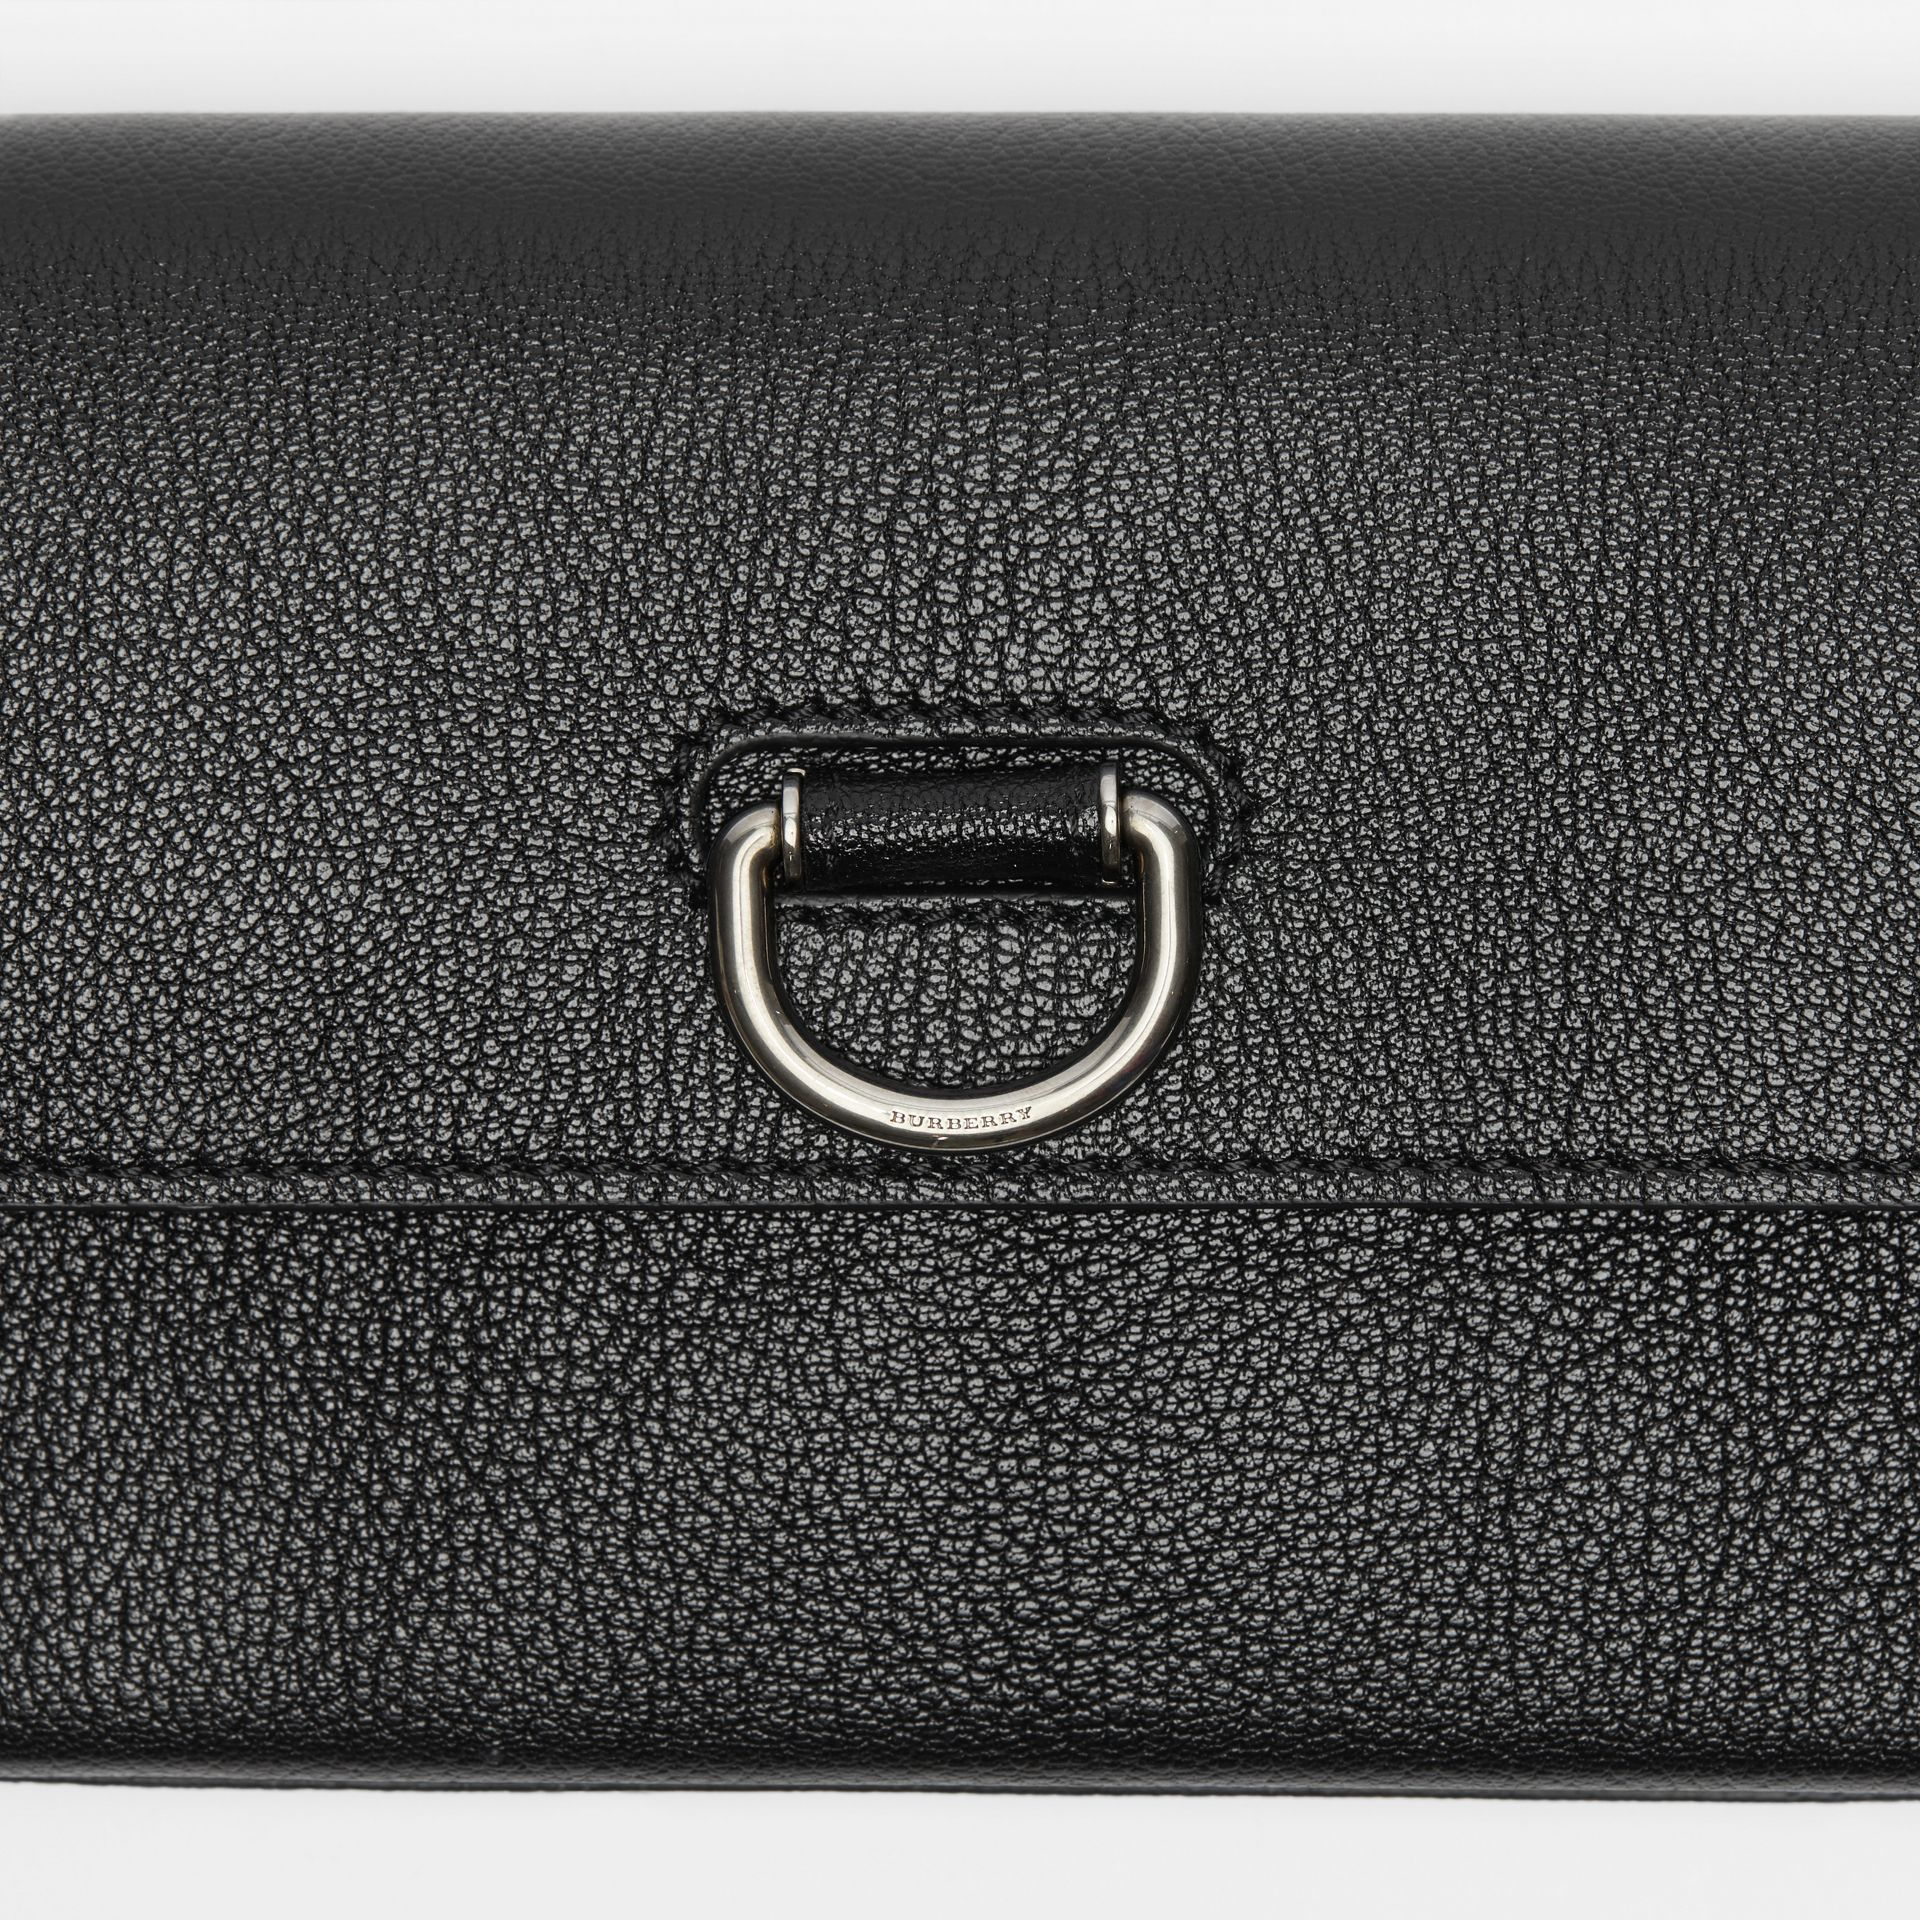 D-ring Leather Wallet with Detachable Strap in Black - Women | Burberry - gallery image 1